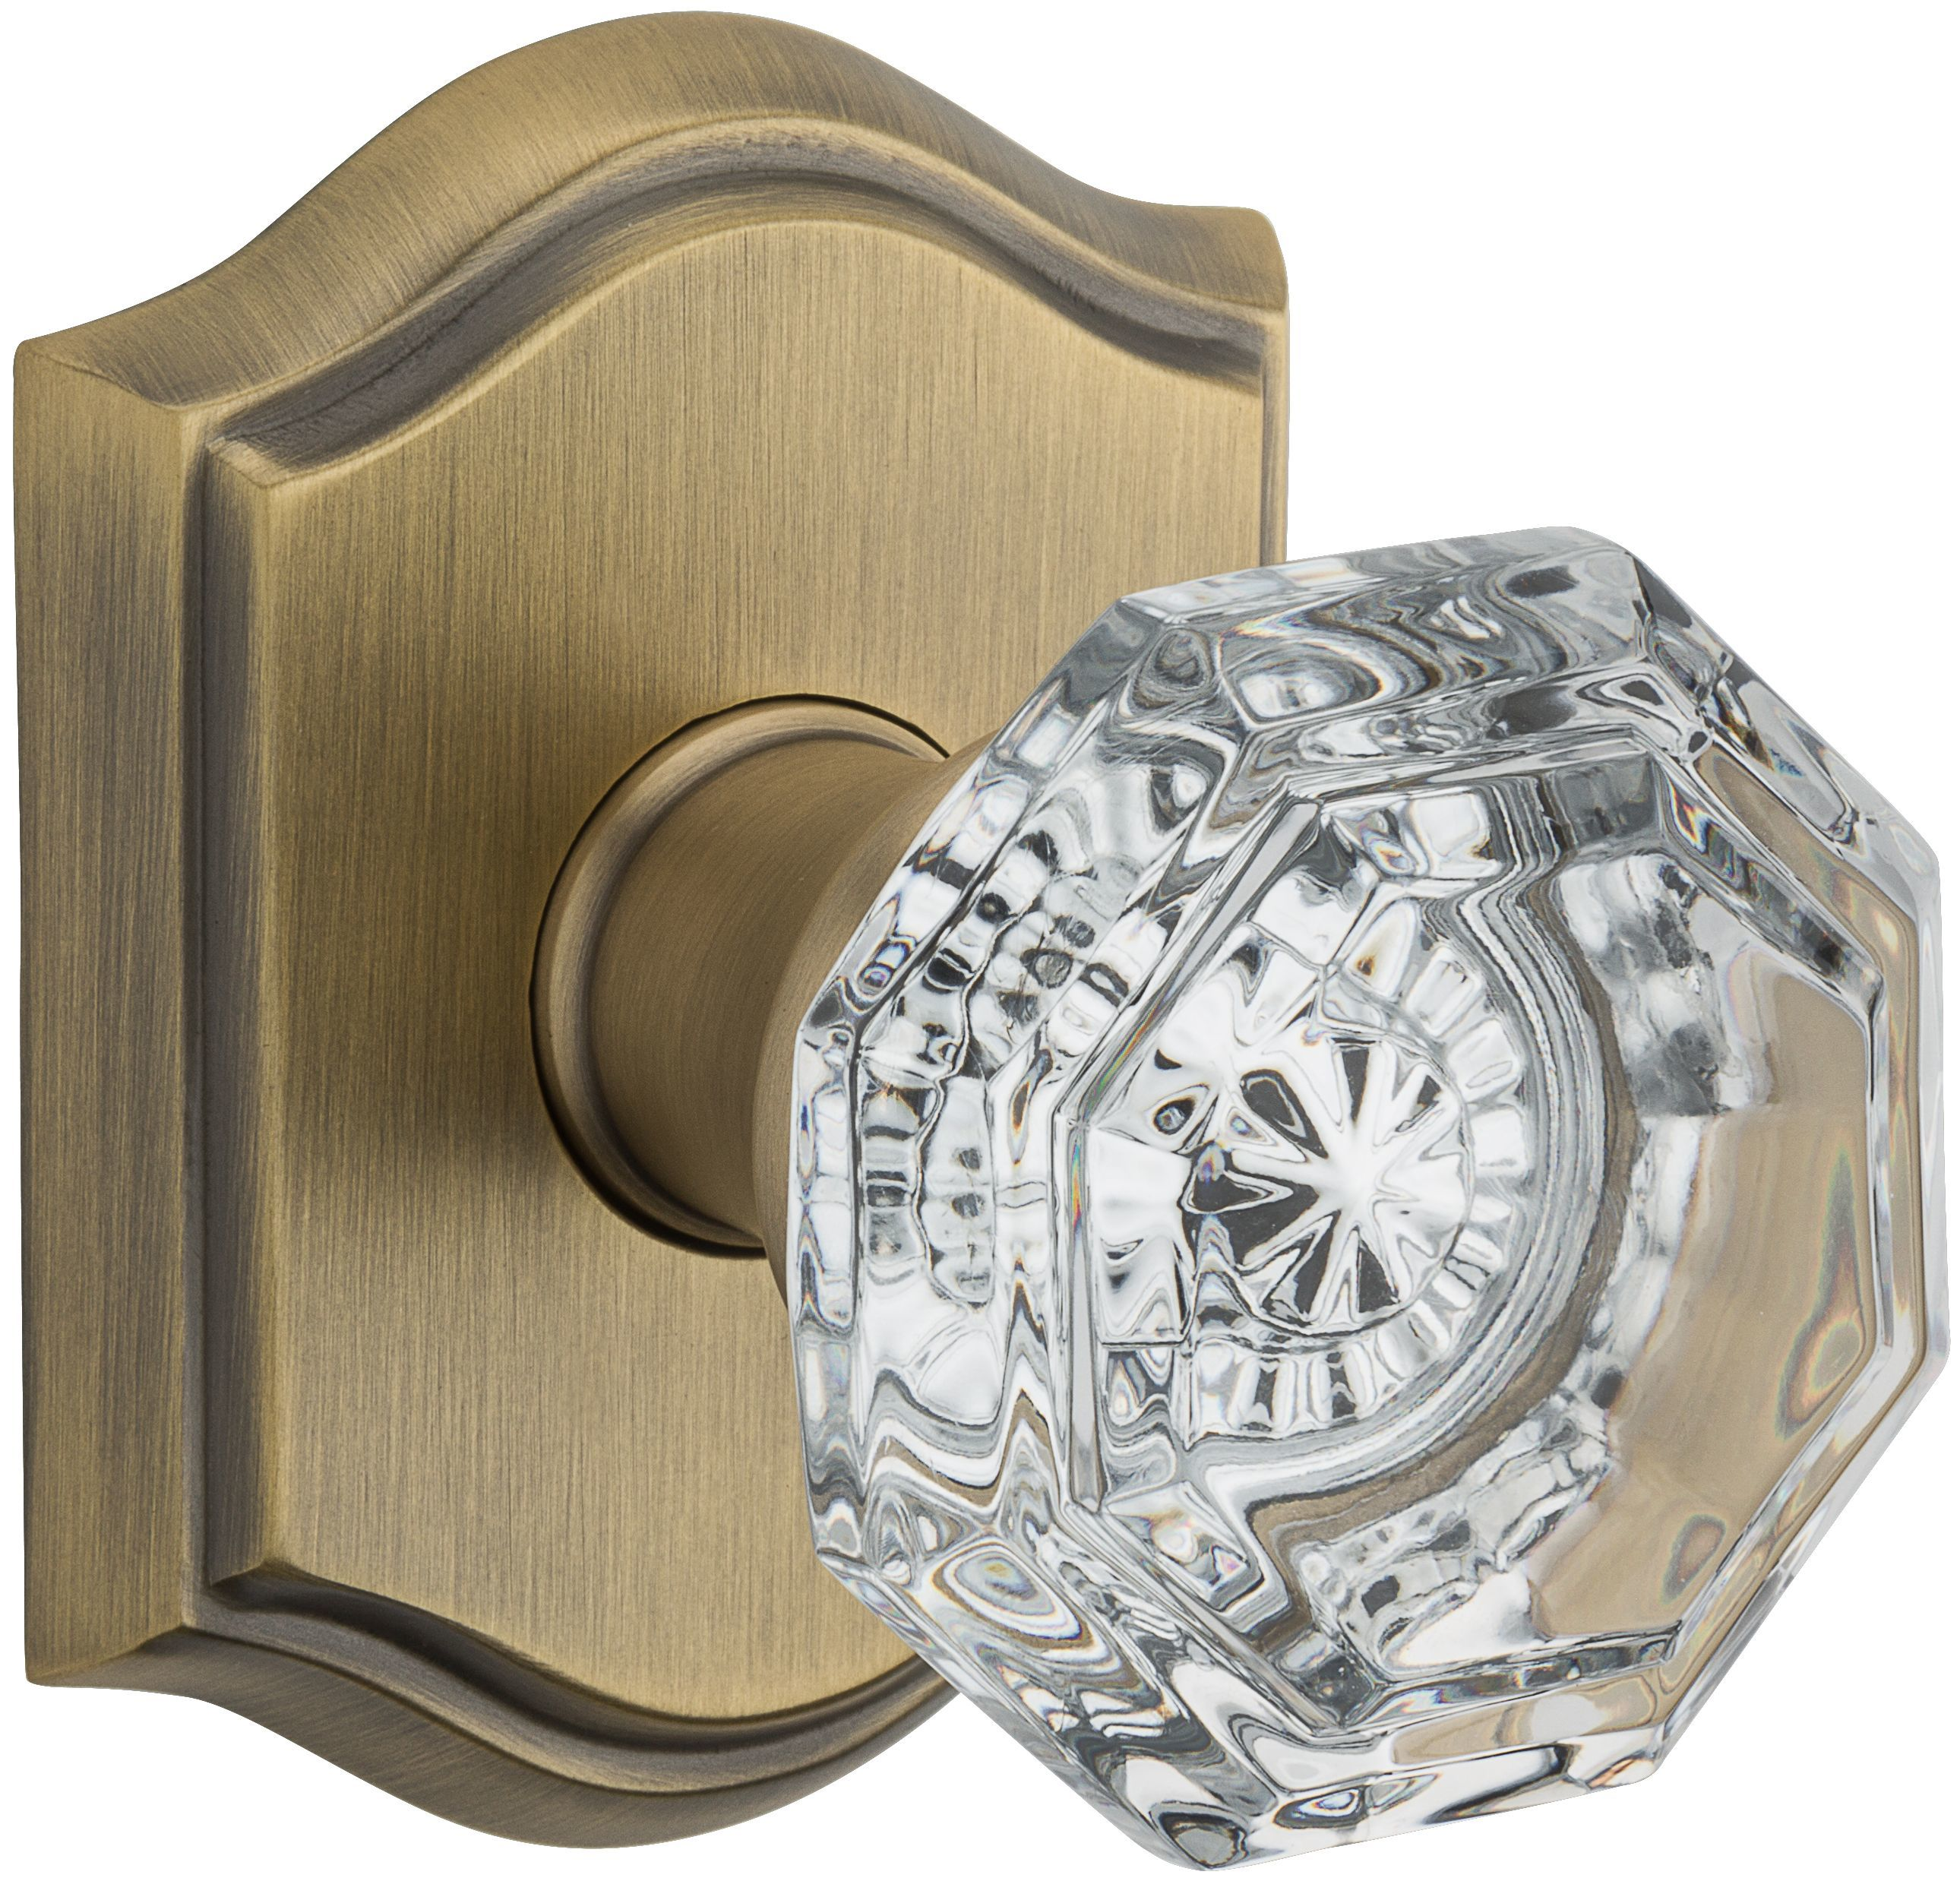 Baldwin PVCRYTAR049 Matte Brass U0026 Black Crystal Privacy Door Knob Set With  Traditional Arch Trim From The Reserve Collection   Handlesets.com